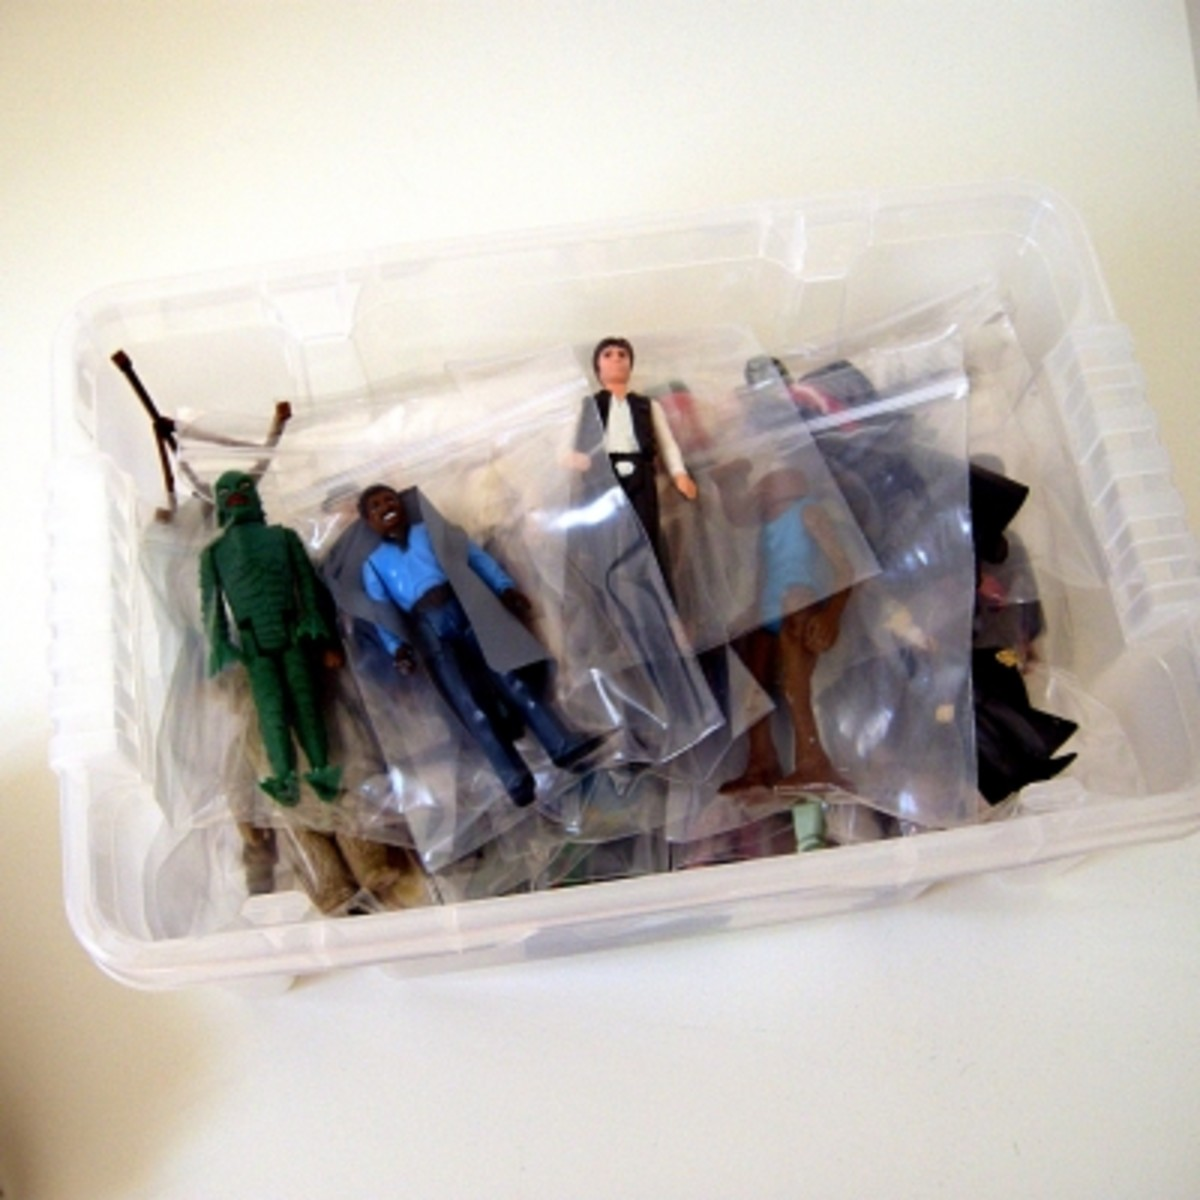 Polypropylene storage boxes are ideal for stowing away your action figure collection